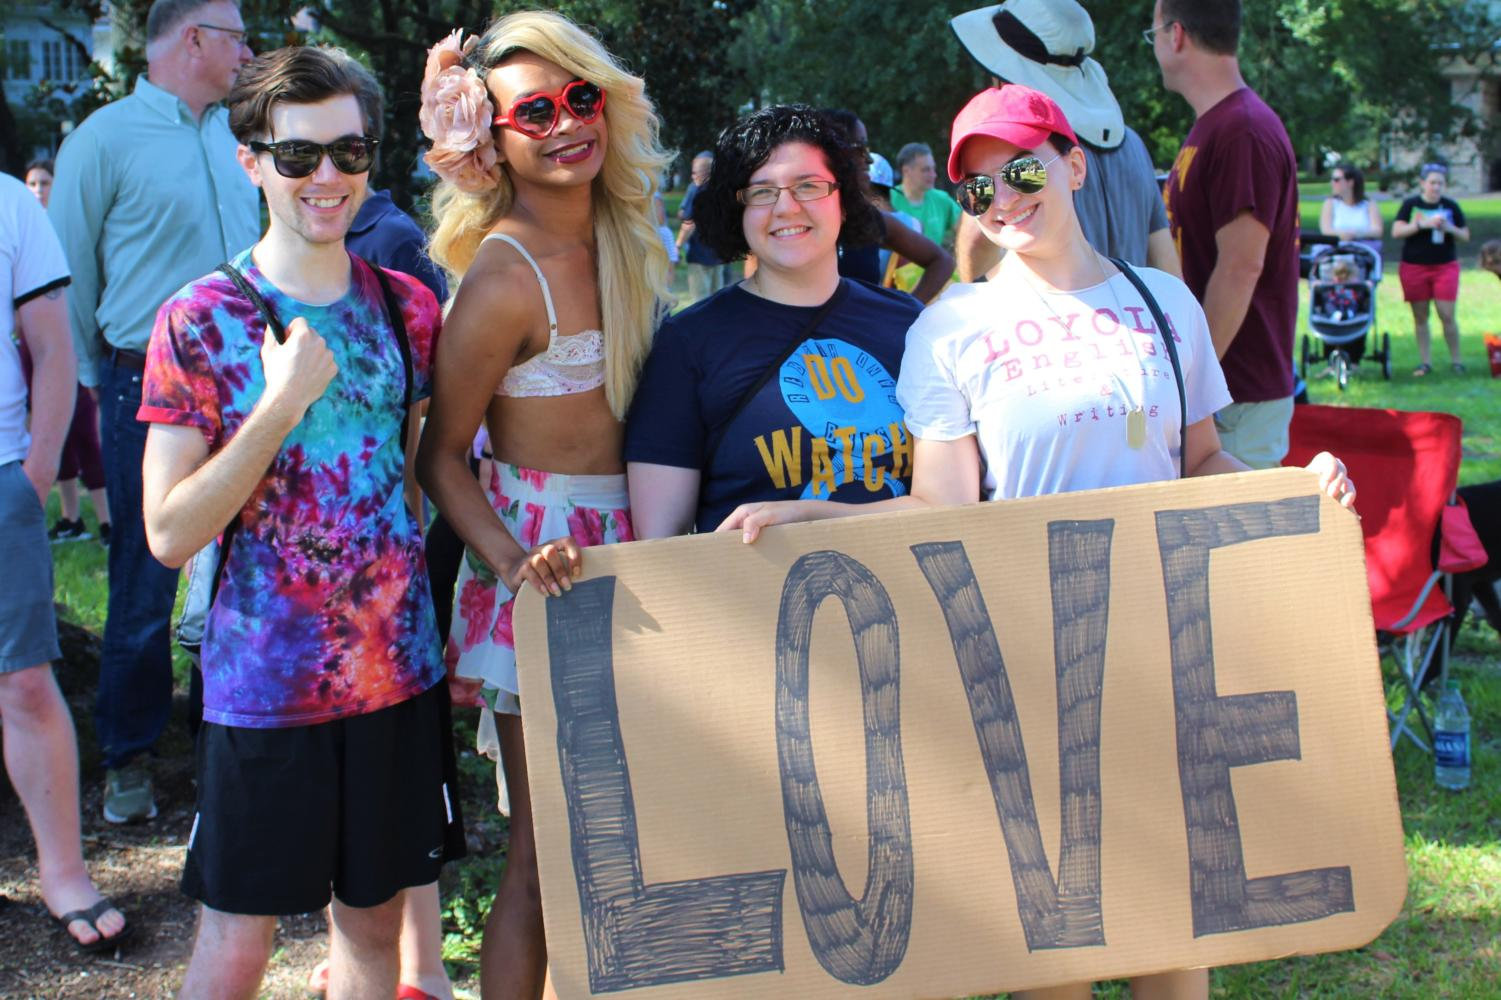 A+group+of+counter+protests+with+signs+against+the+Westboro+Baptist+Church.+Photo+credit%3A+Alexandria+Whitten